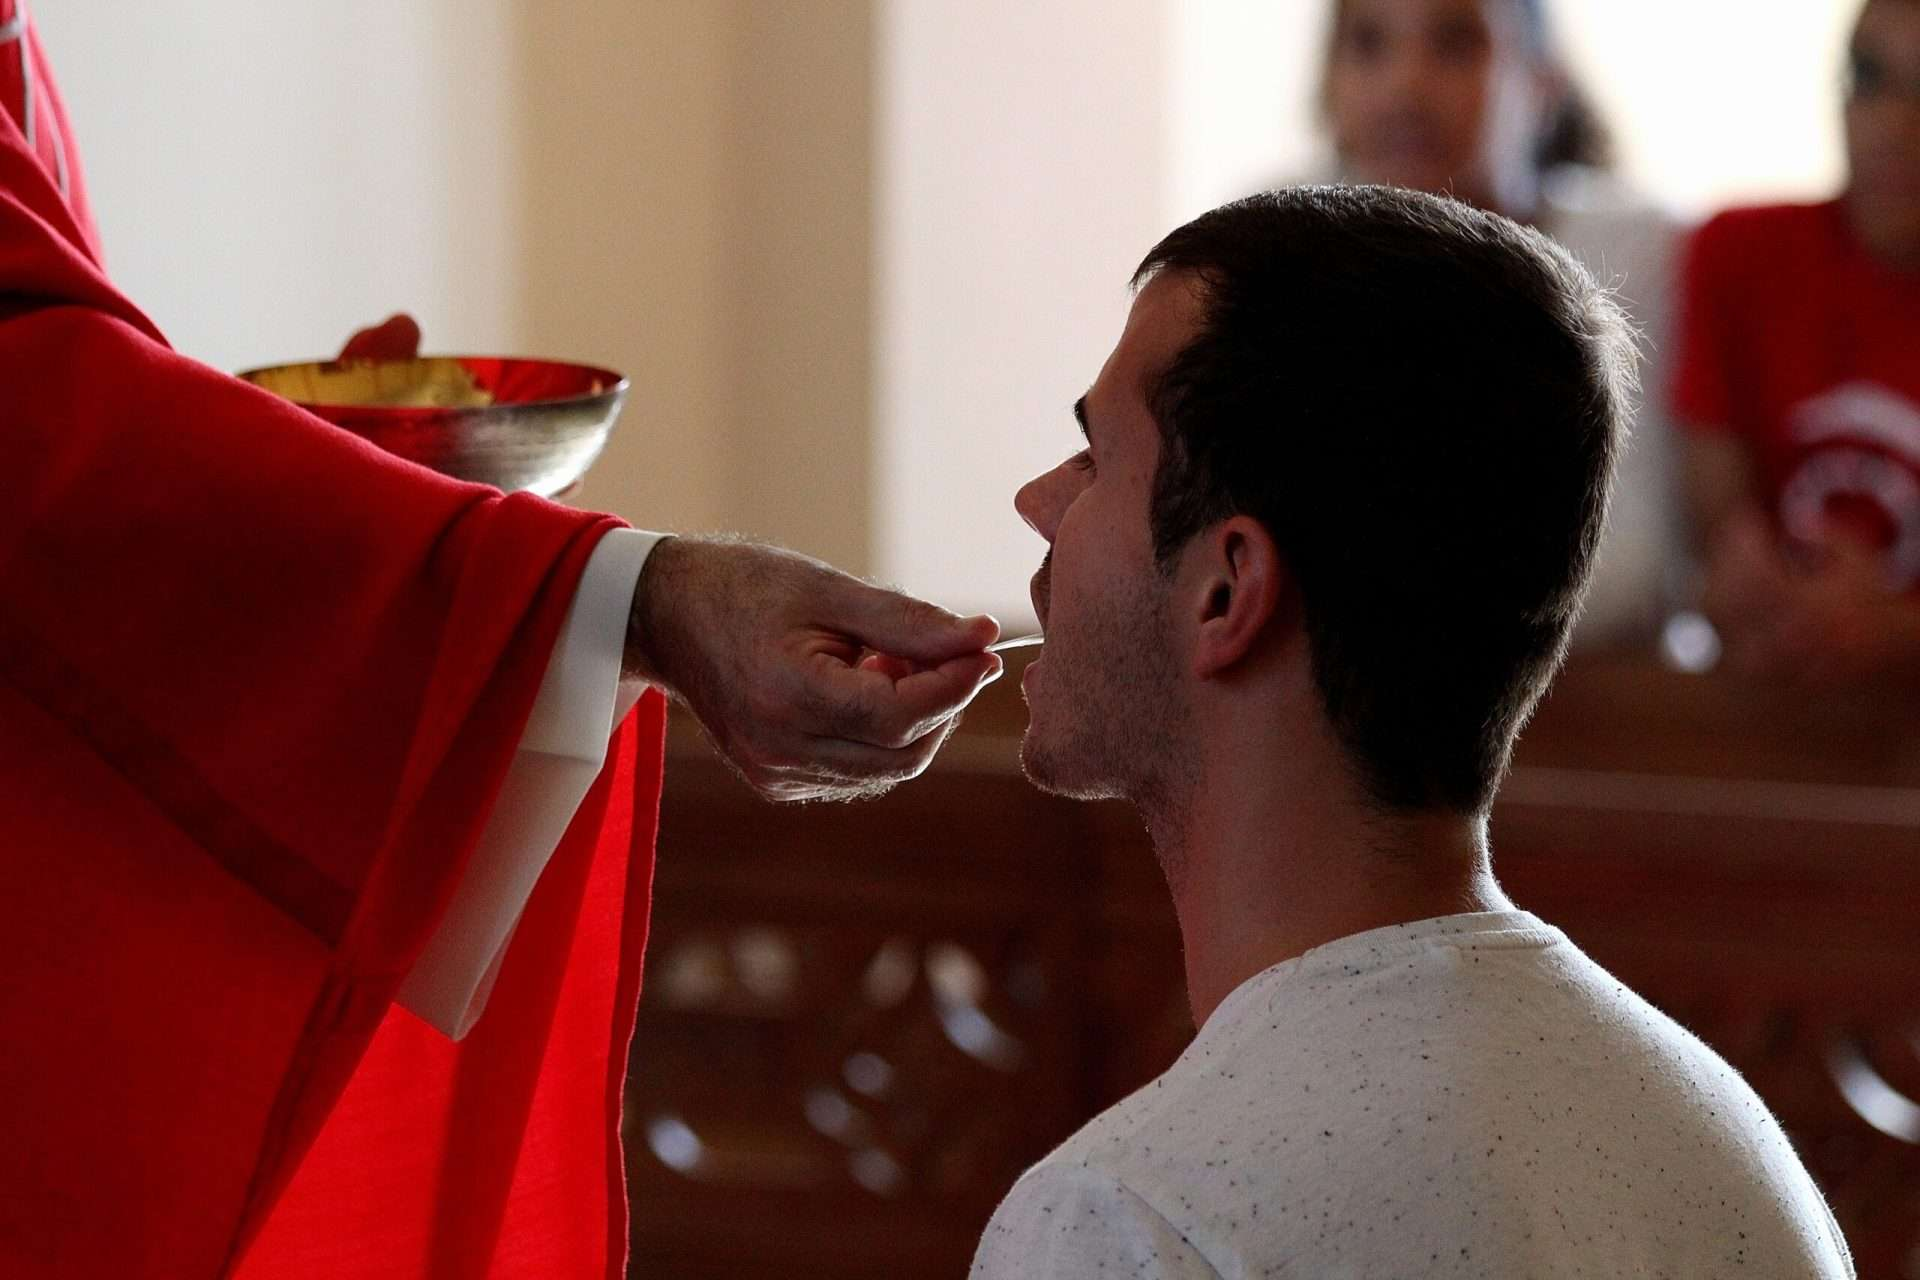 What do I do if I drop the Eucharist?